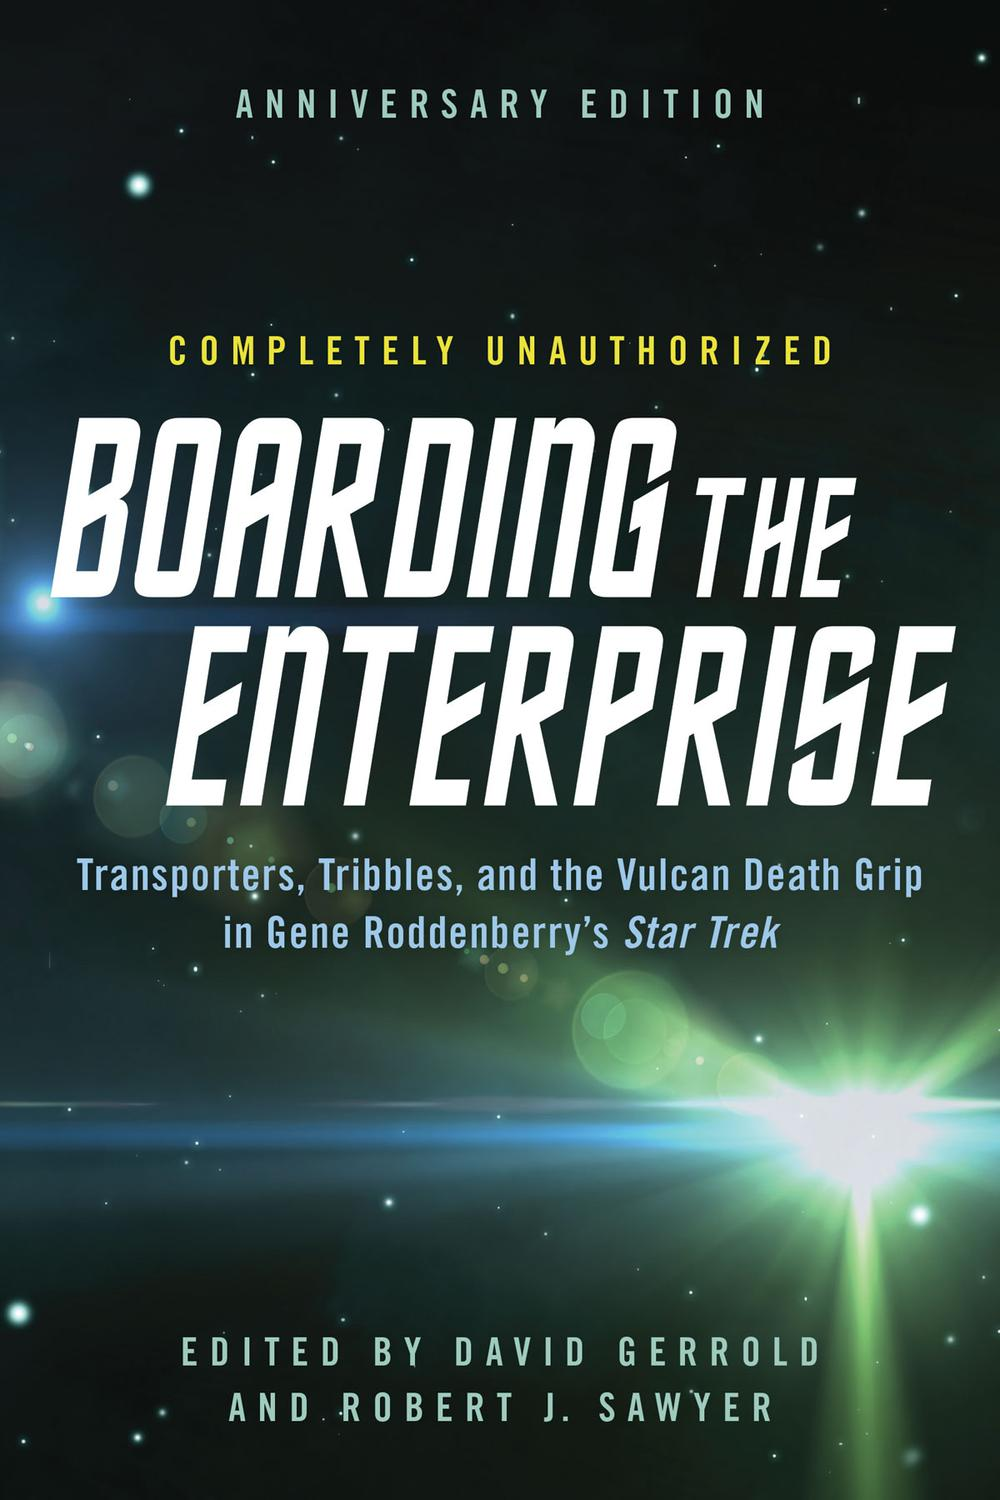 BoardingtheEnterprise_AnniversaryEdition_FrontCover